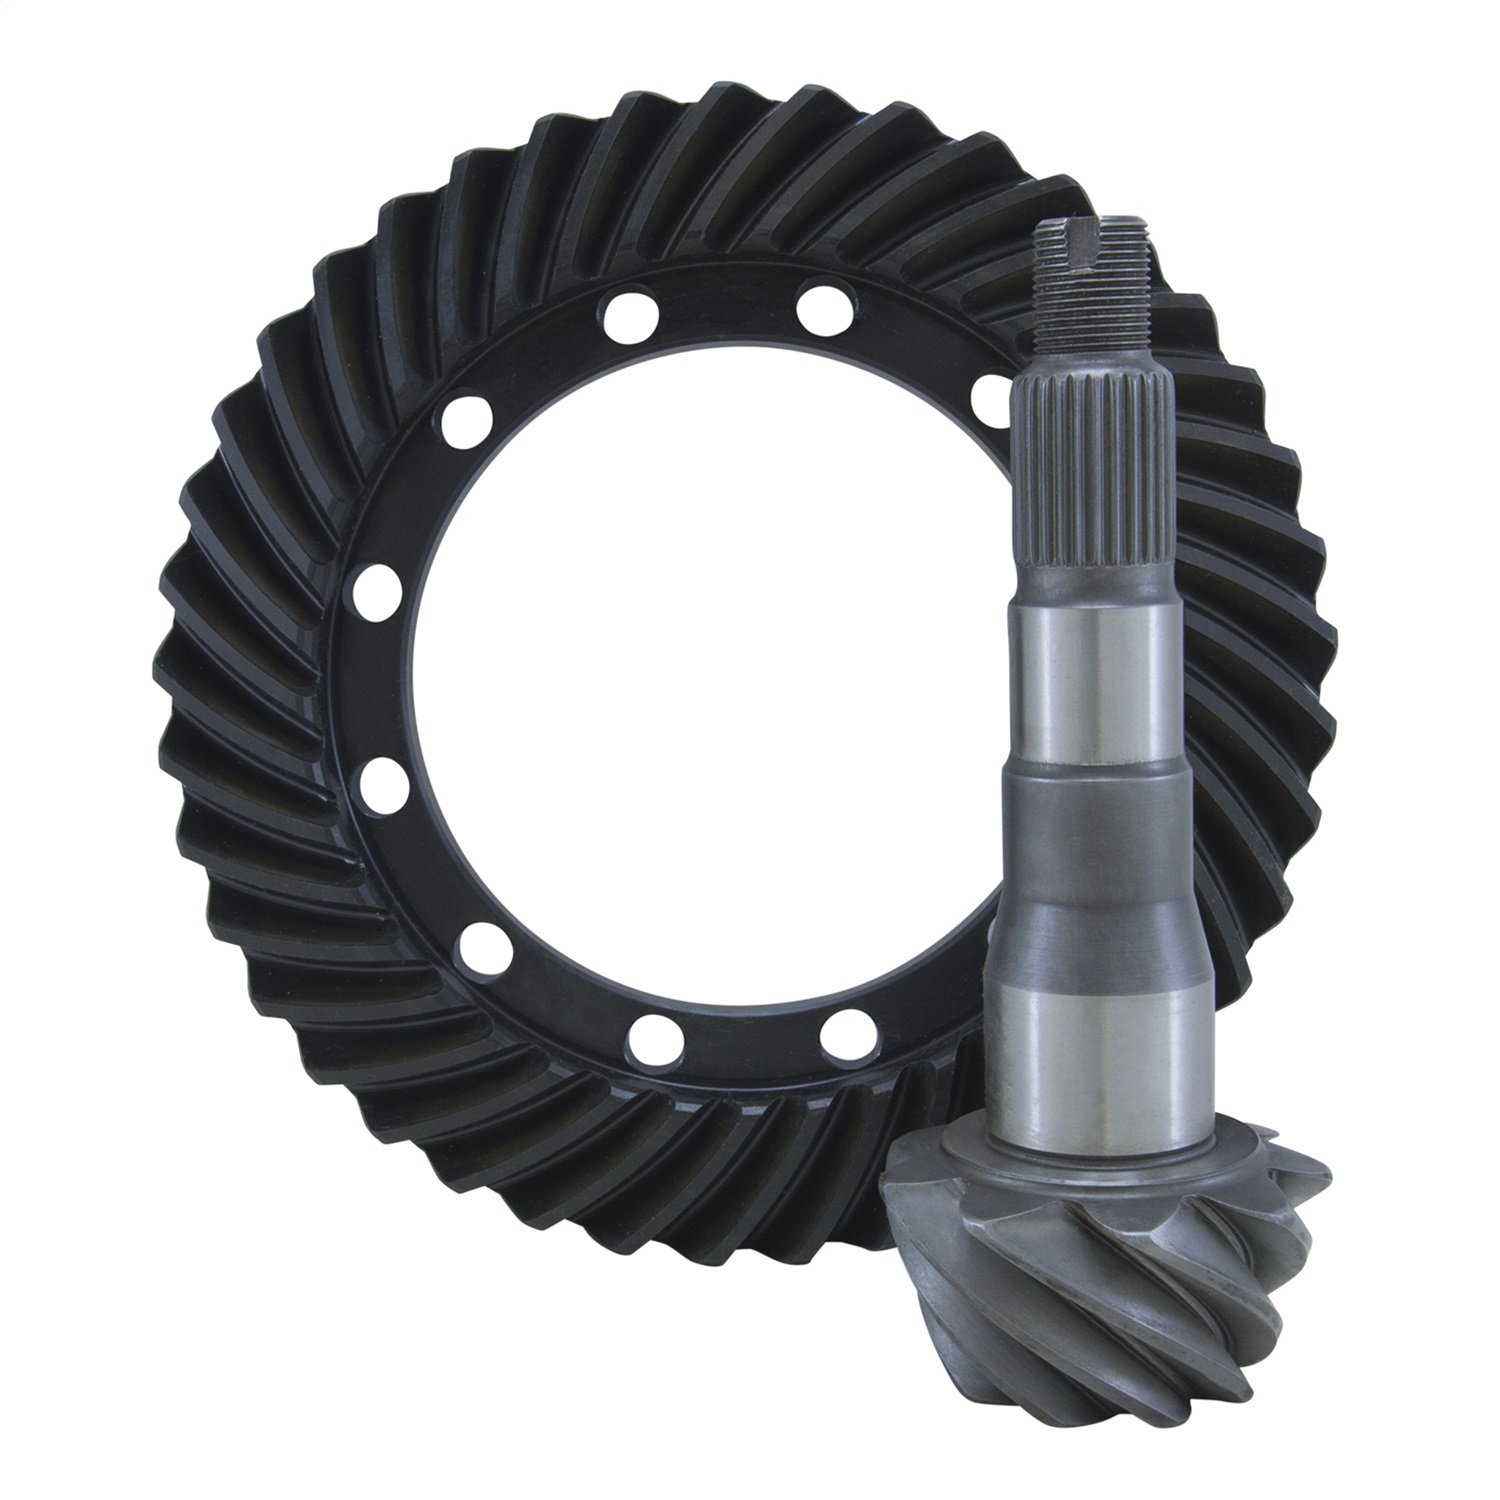 USA Standard Gear ZG GM8.5-308 Ring /& Pinion Gear Set for GM 8.5 Differential